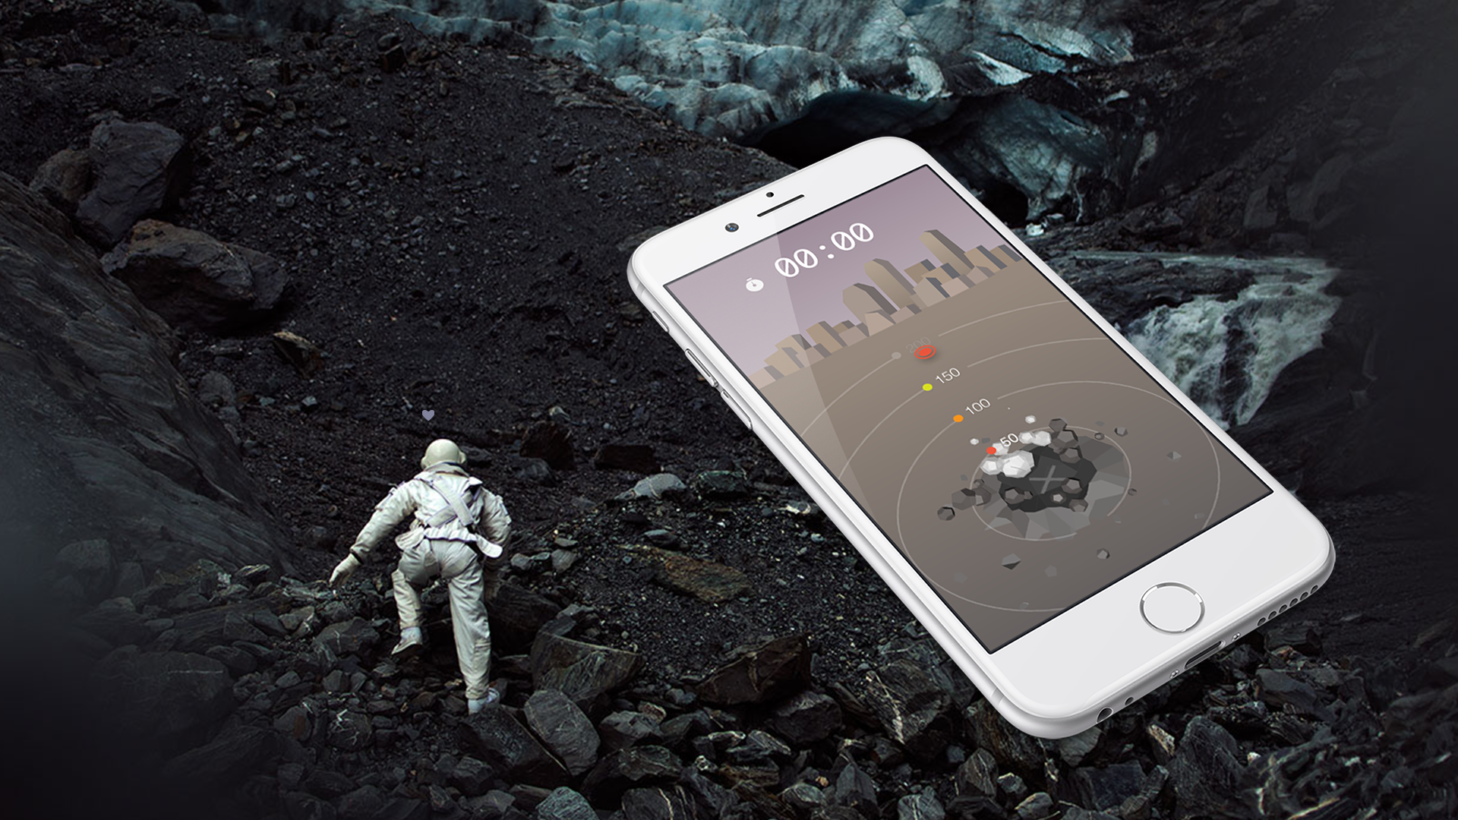 The winner of this astronaut training game could be going to space for real